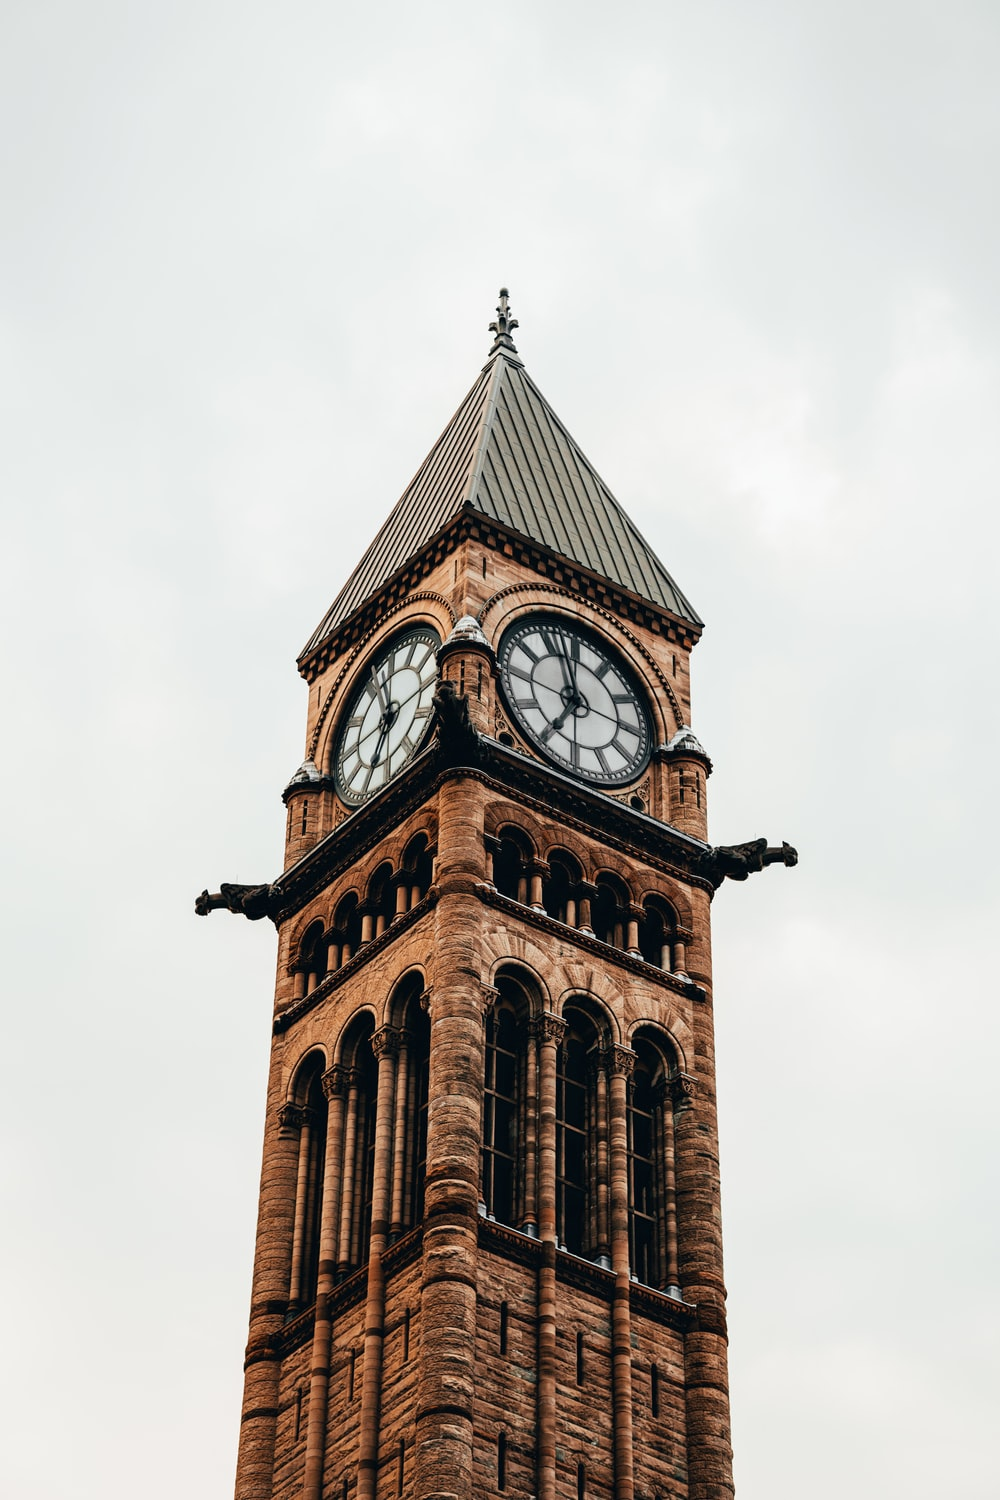 low angle photo of tower with clock